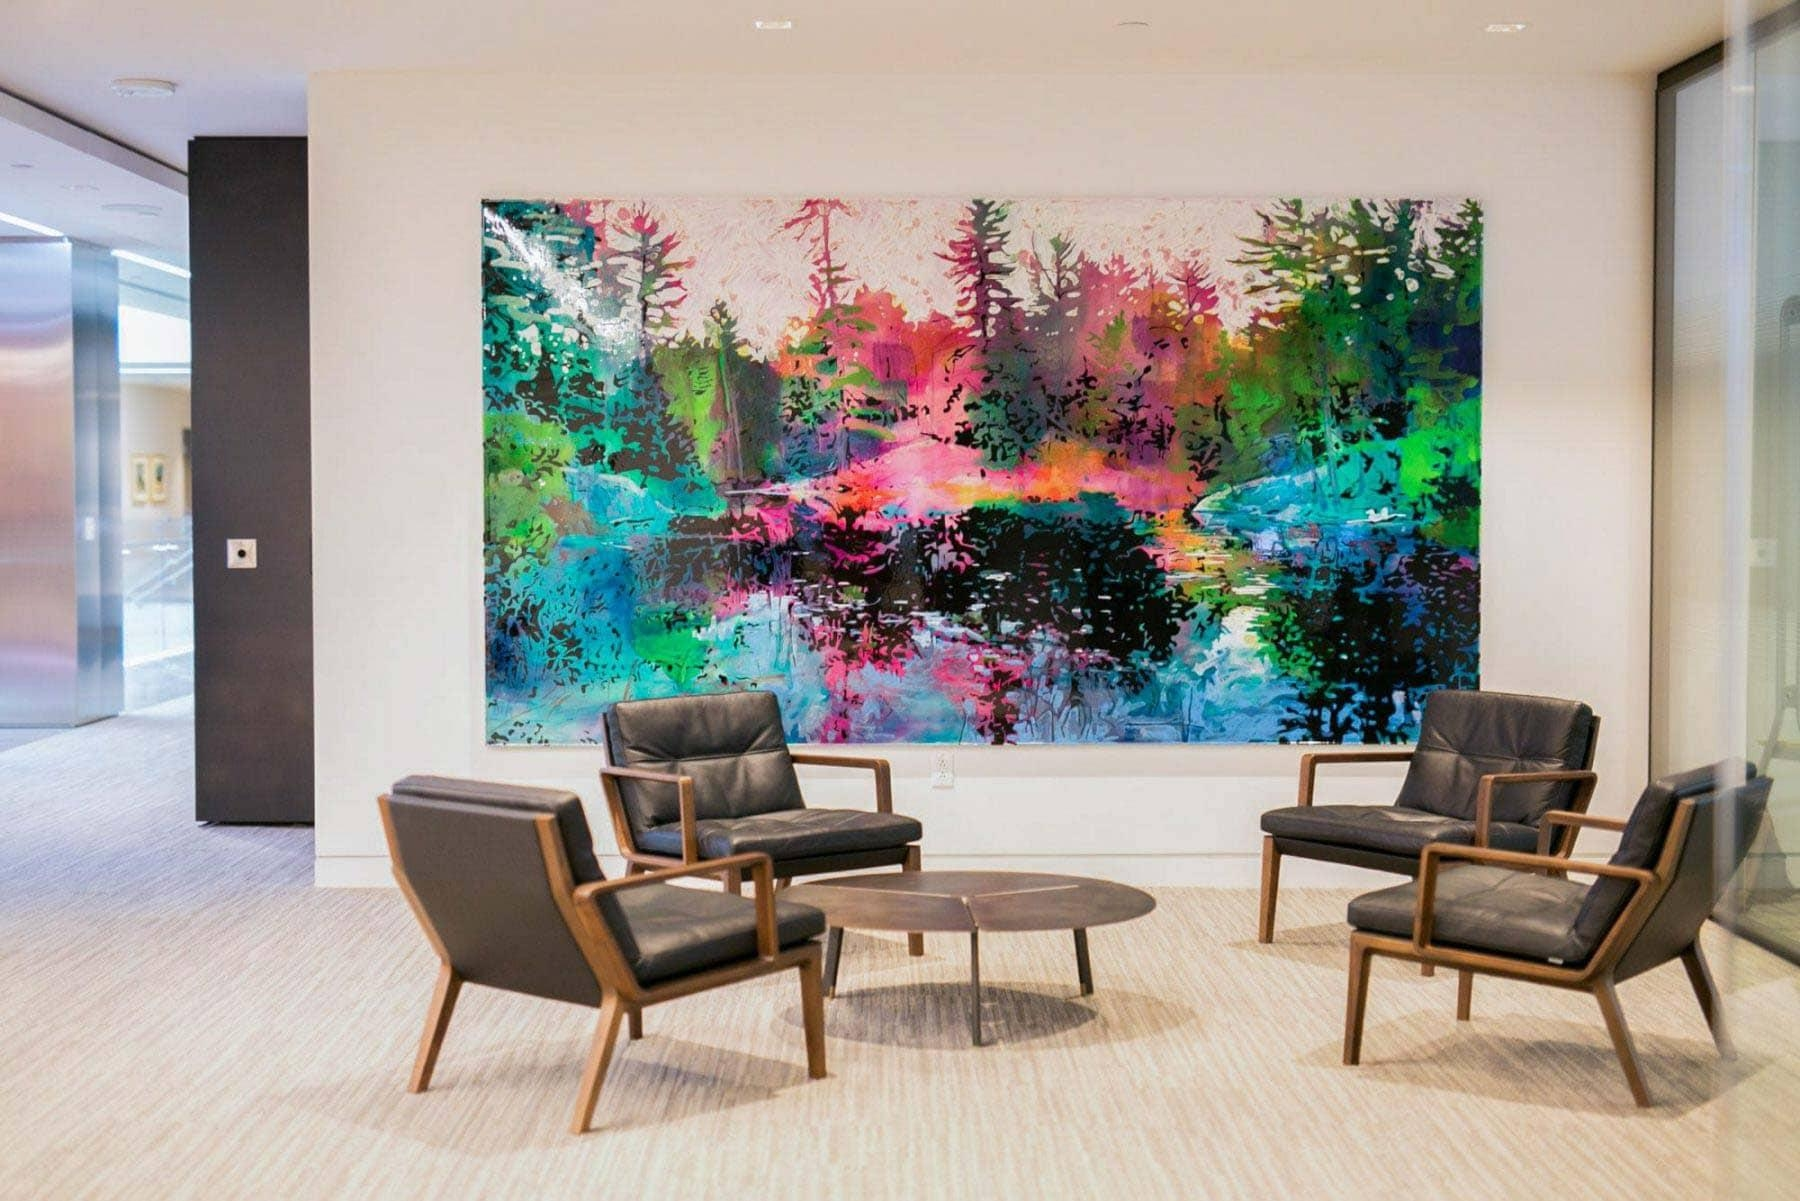 Deloitte National Headquarters | Corporate Fine Art Collection | Tap Regarding Corporate Wall Art (Image 9 of 20)